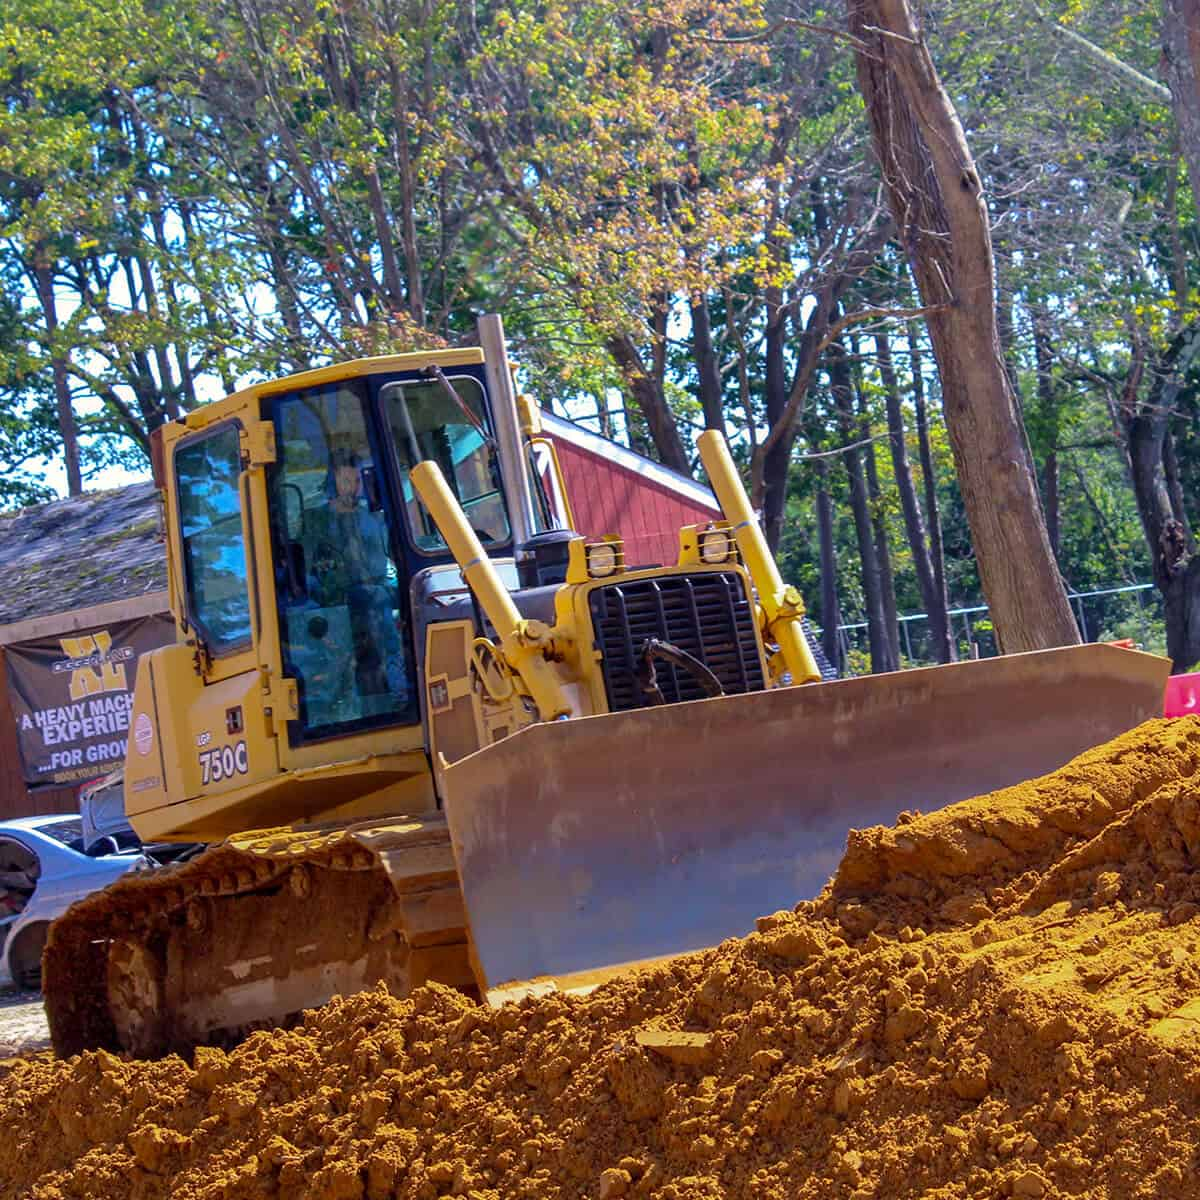 Bulldozer plows dirt